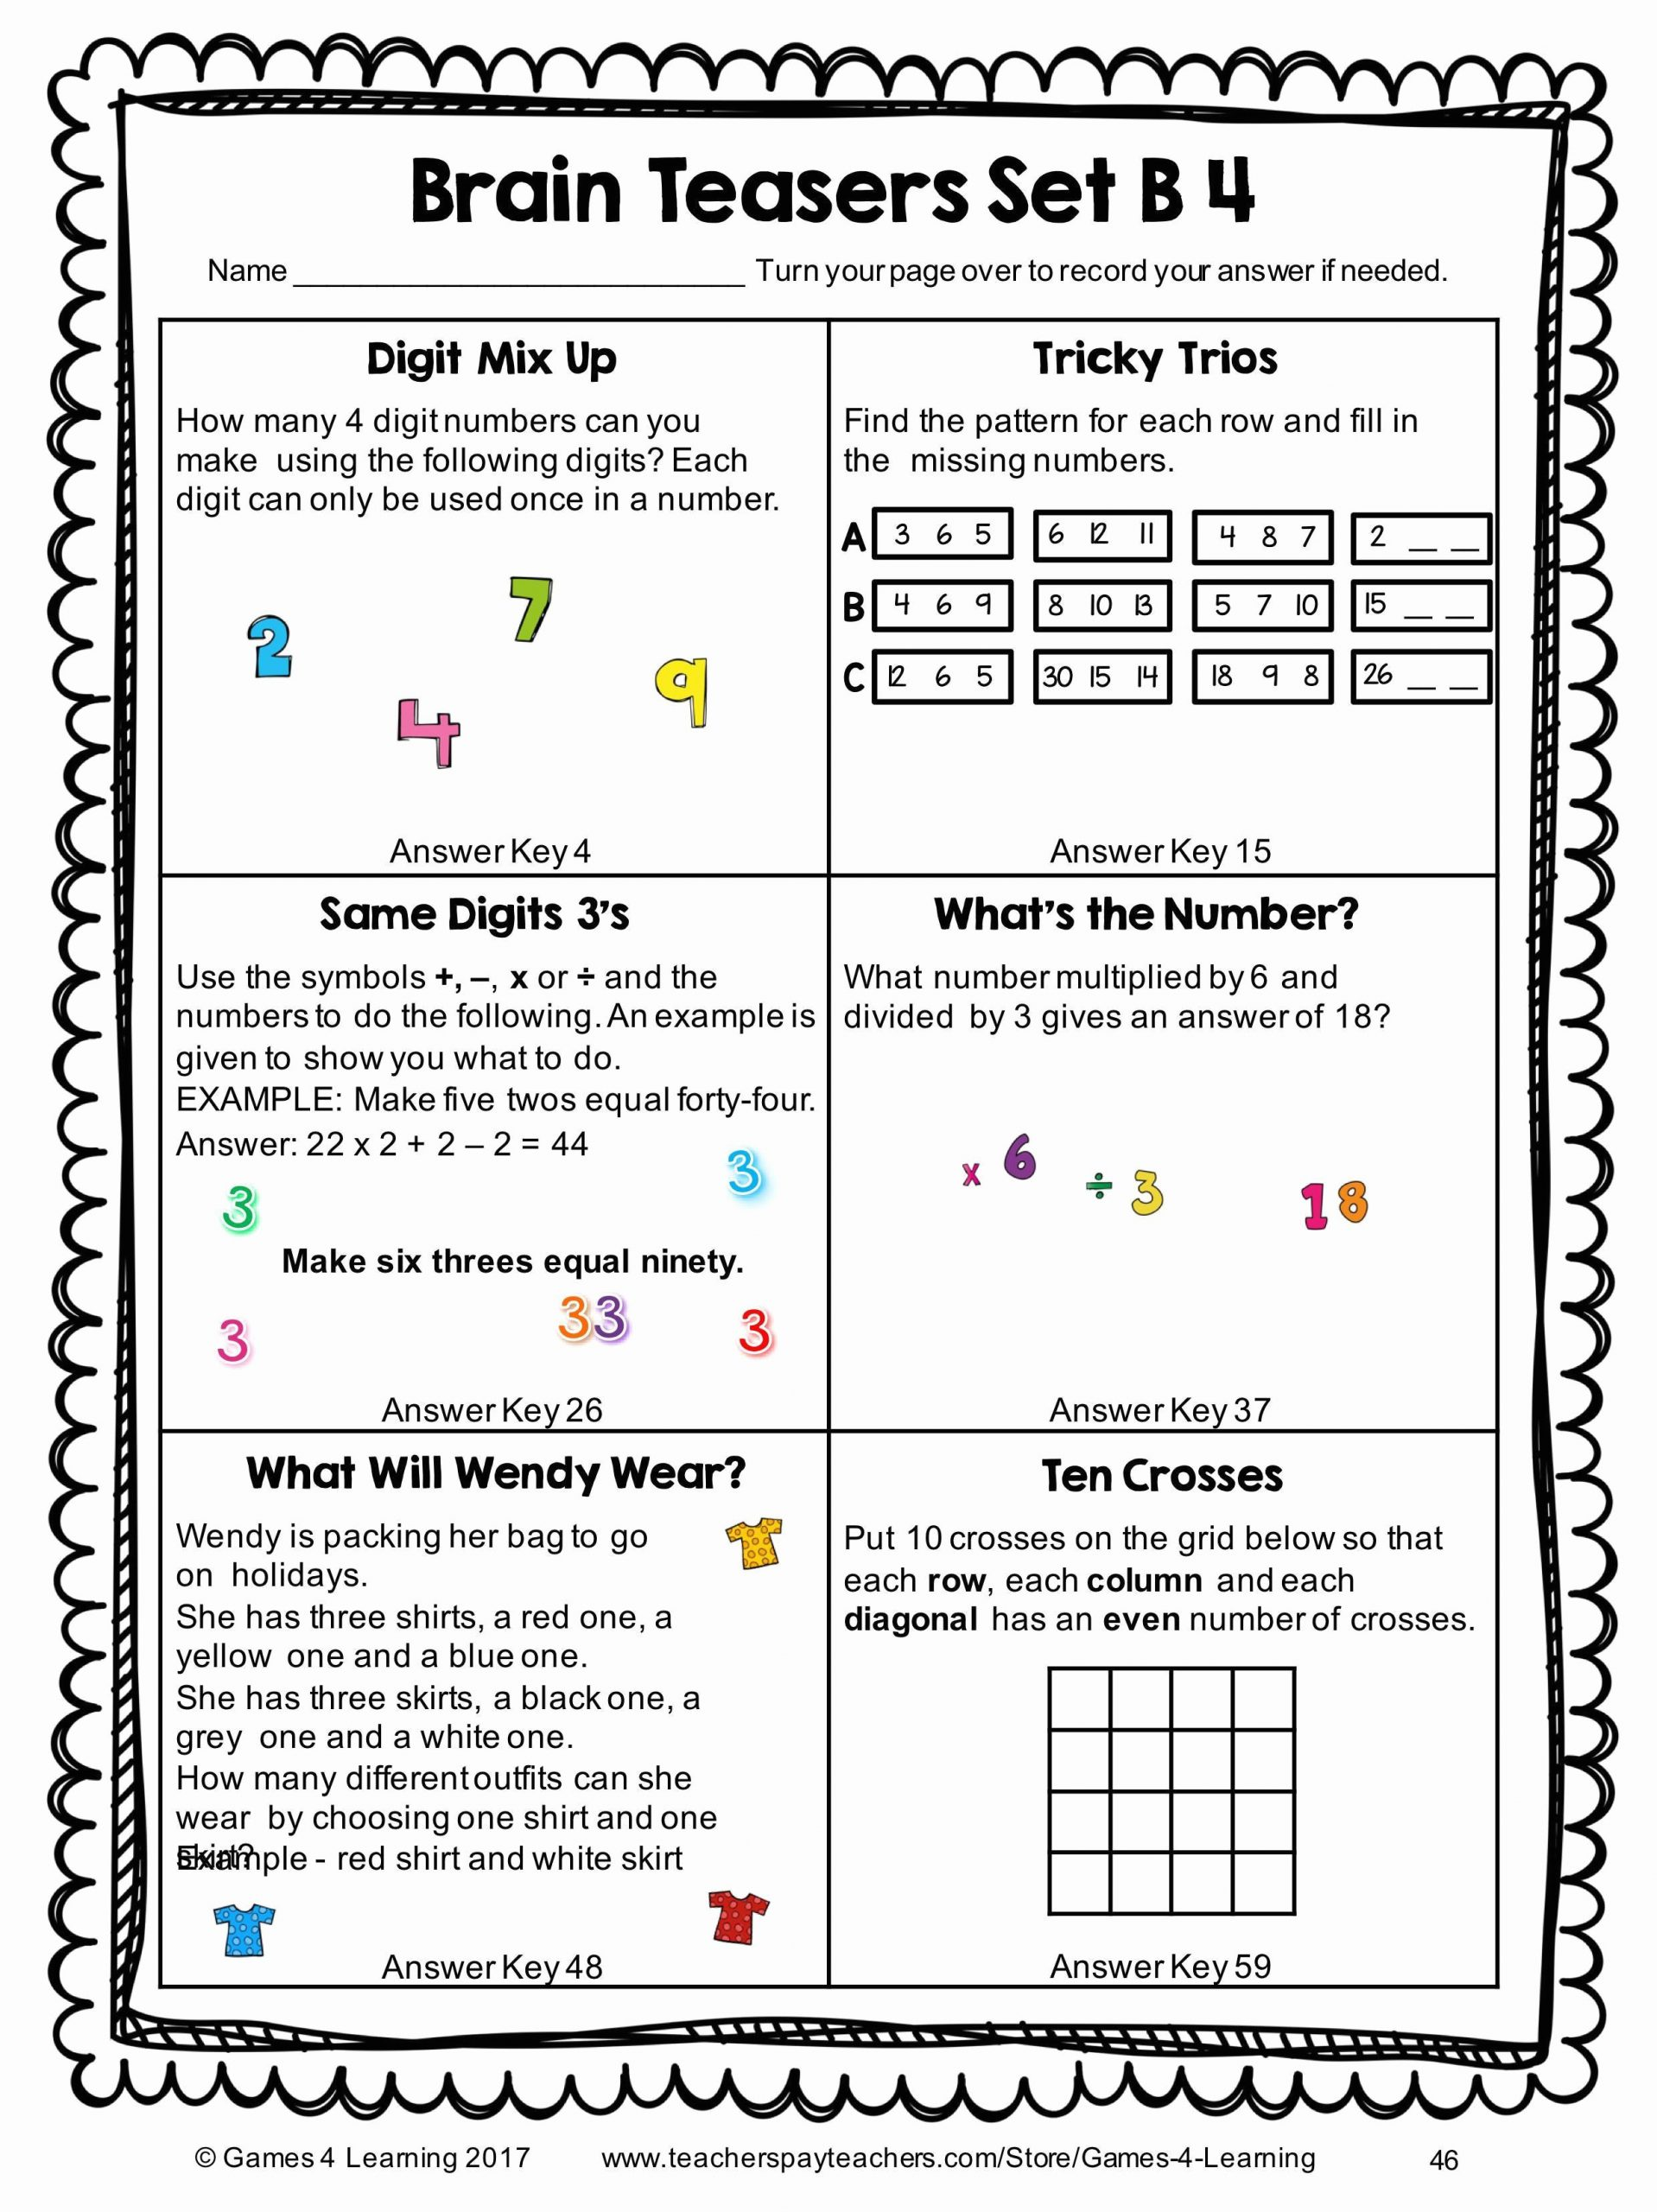 Brain Teasers Printable Worksheets 6th Grade Brain Teasers Worksheets